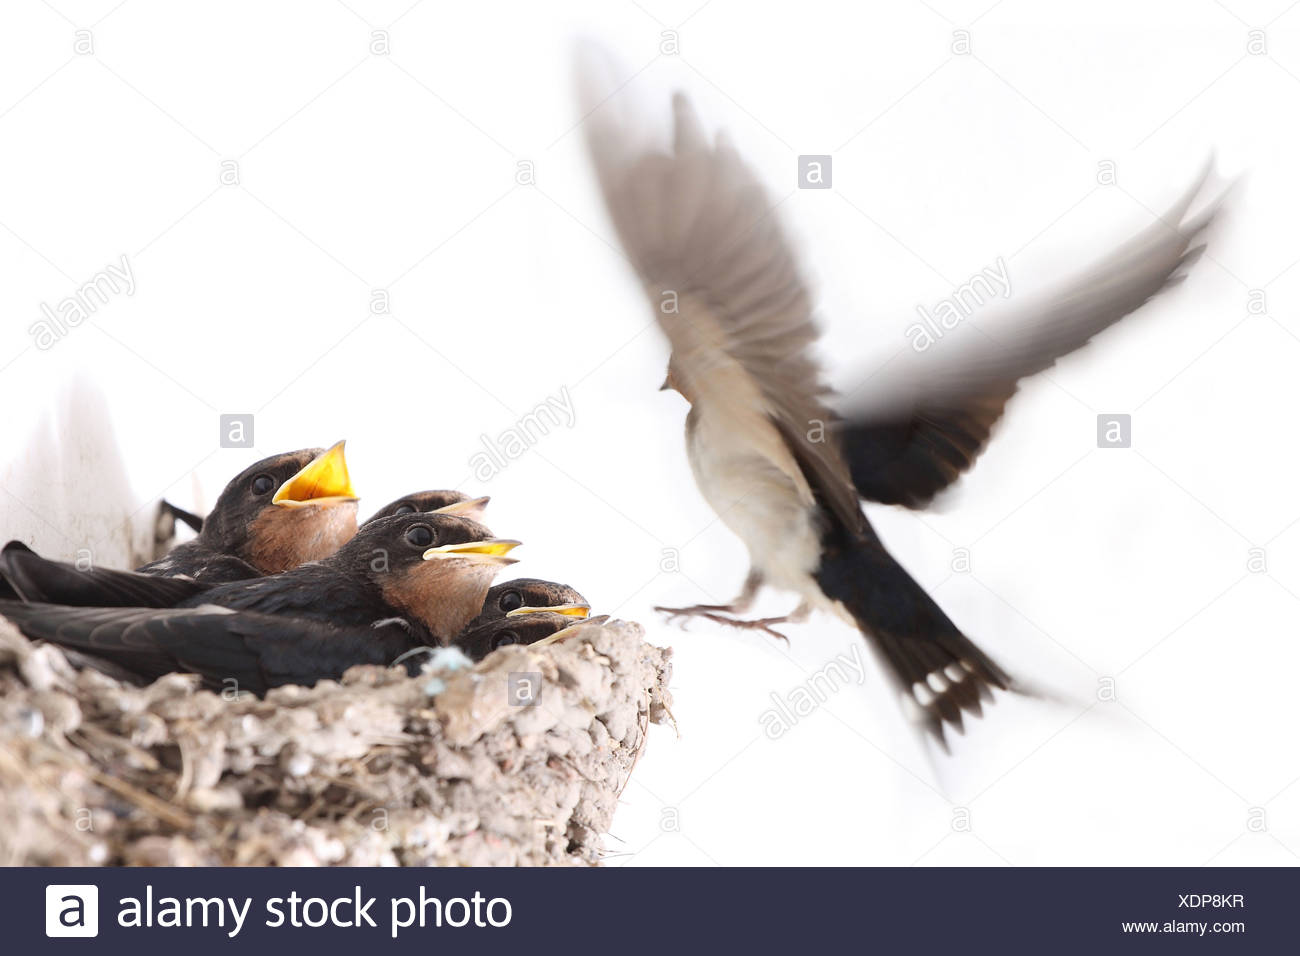 hungry nestlings - Stock Image